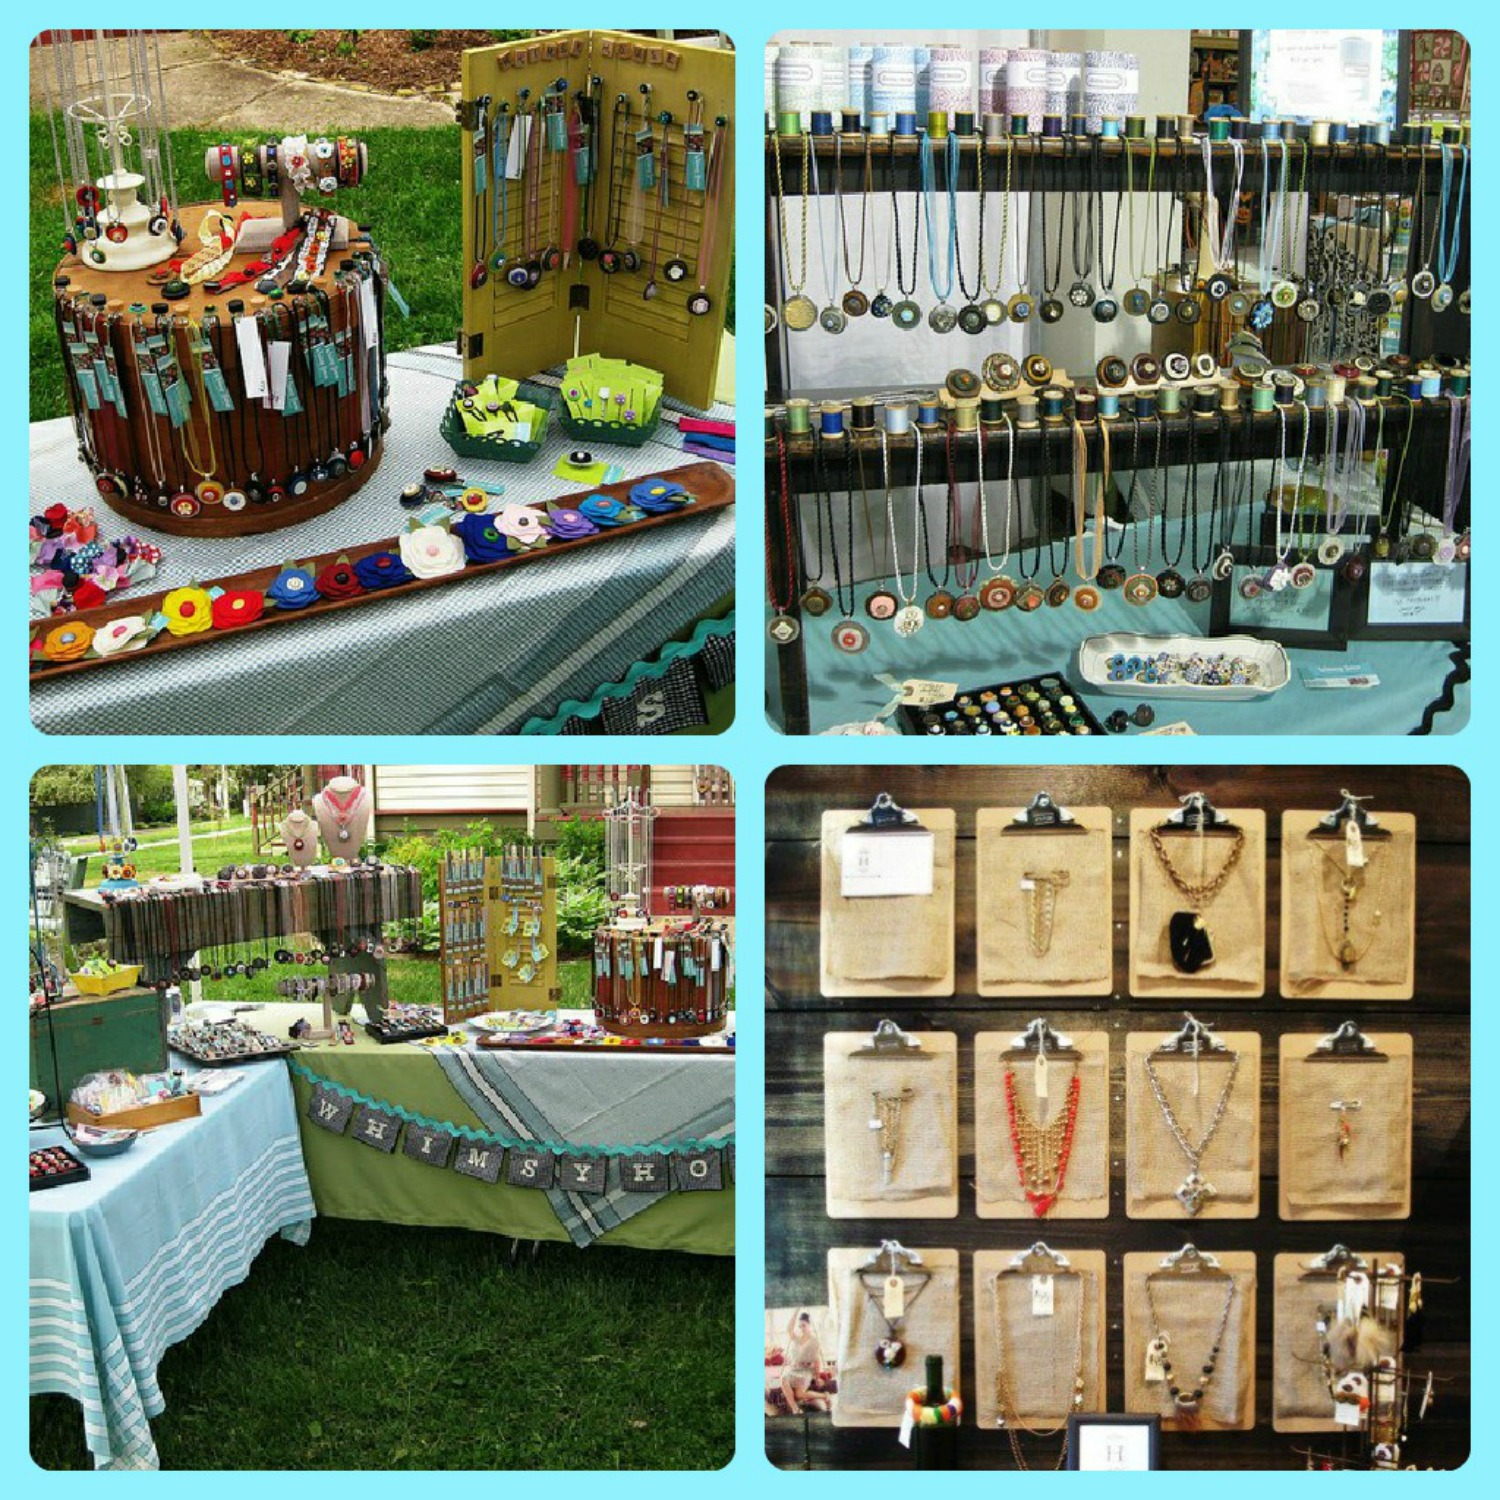 Stamping out loud arts and craft booth ideas for Display necklaces craft fair